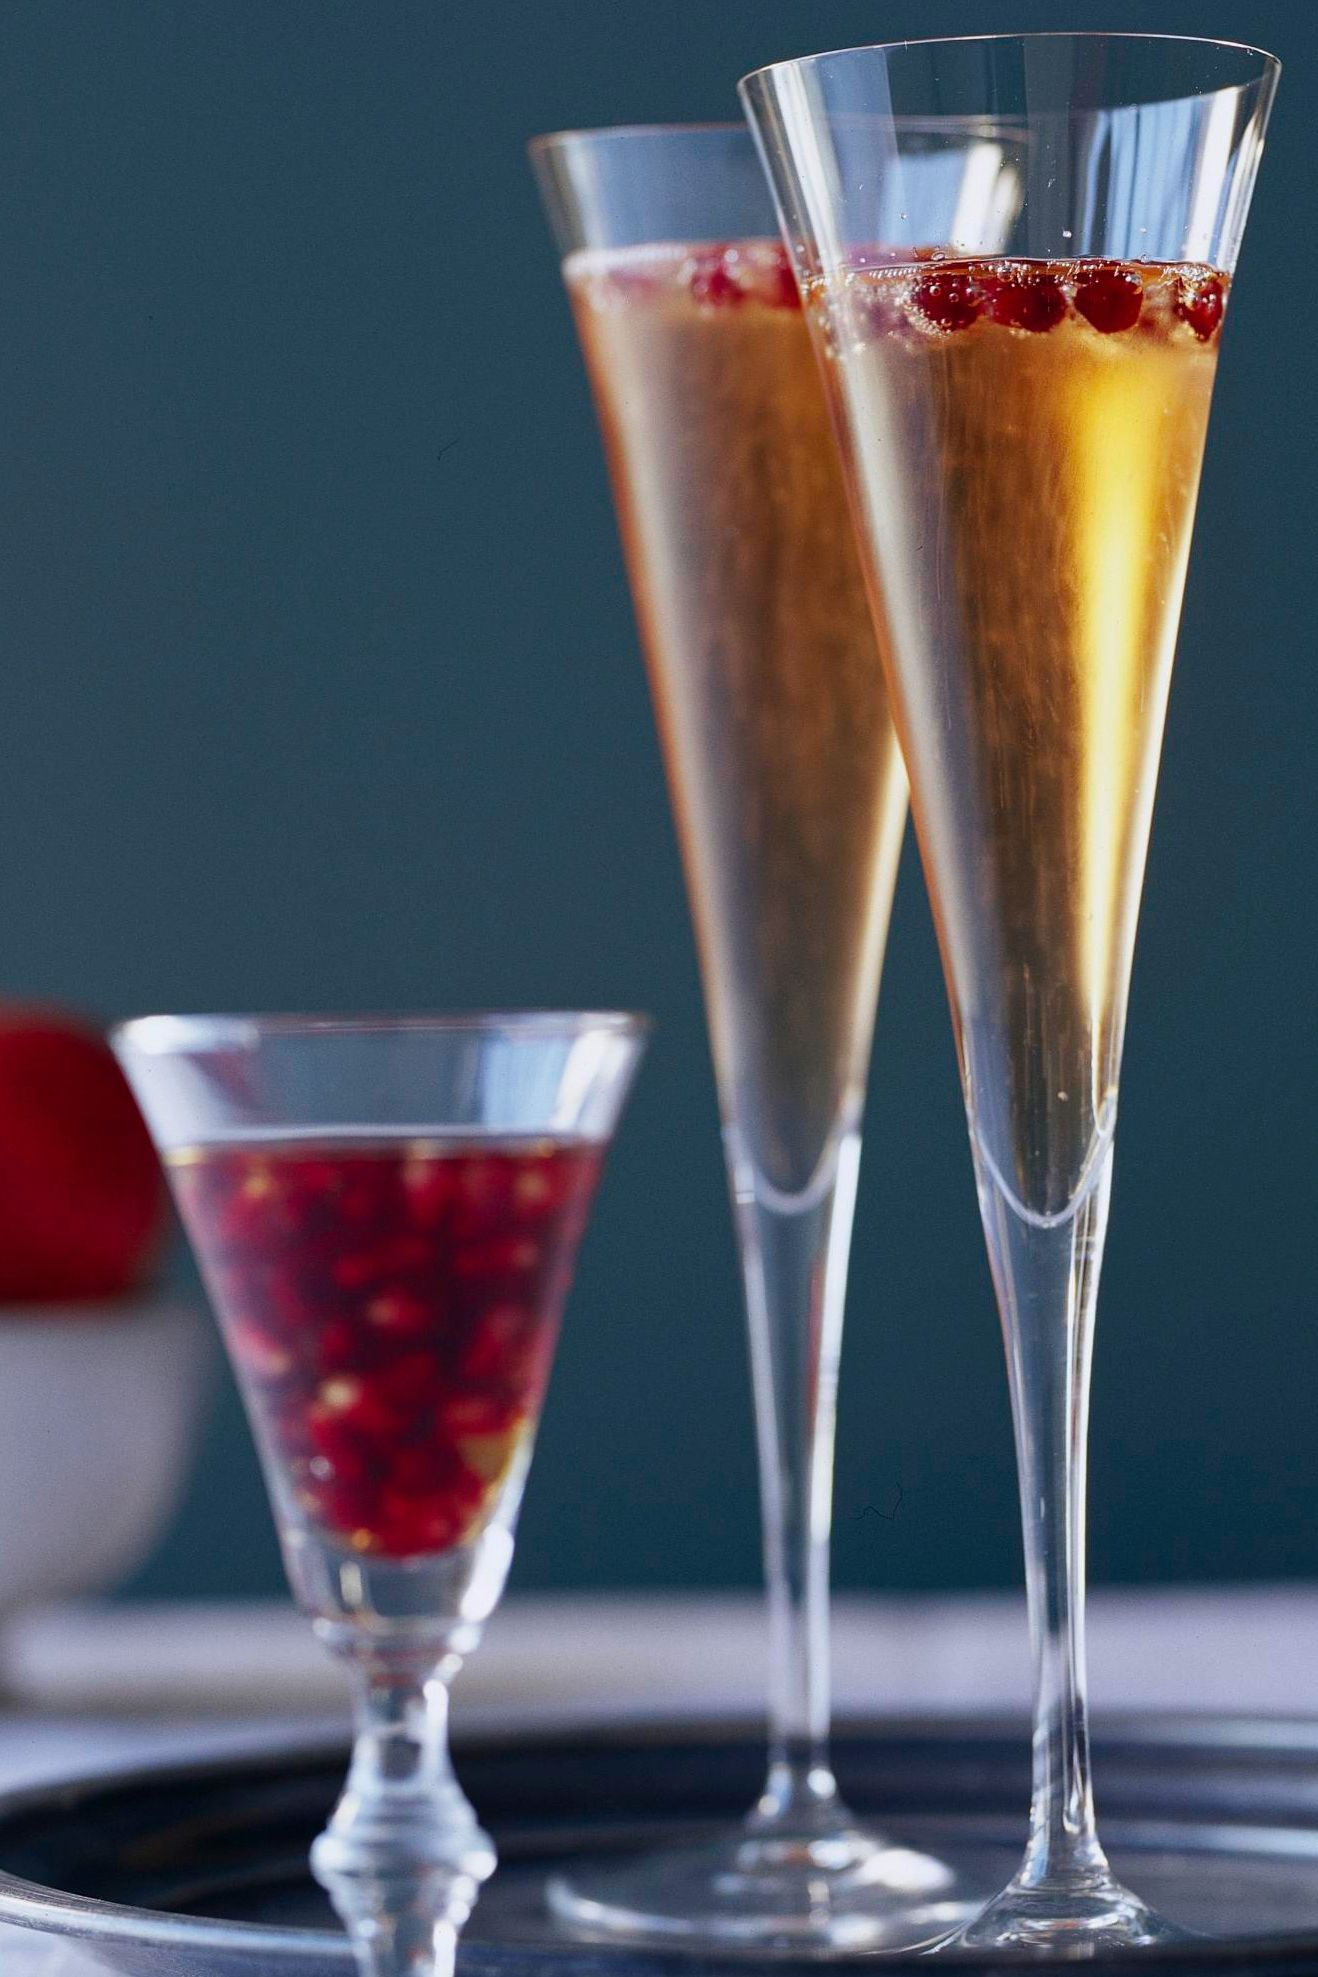 Bursting with tart pomegranate flavor, this bubbly beverage is one of our most popular champagne mixed drinks. #champagnecocktails #holidaycocktails #wintercocktails #easycocktailrecipes #drinkrecipes #bhg